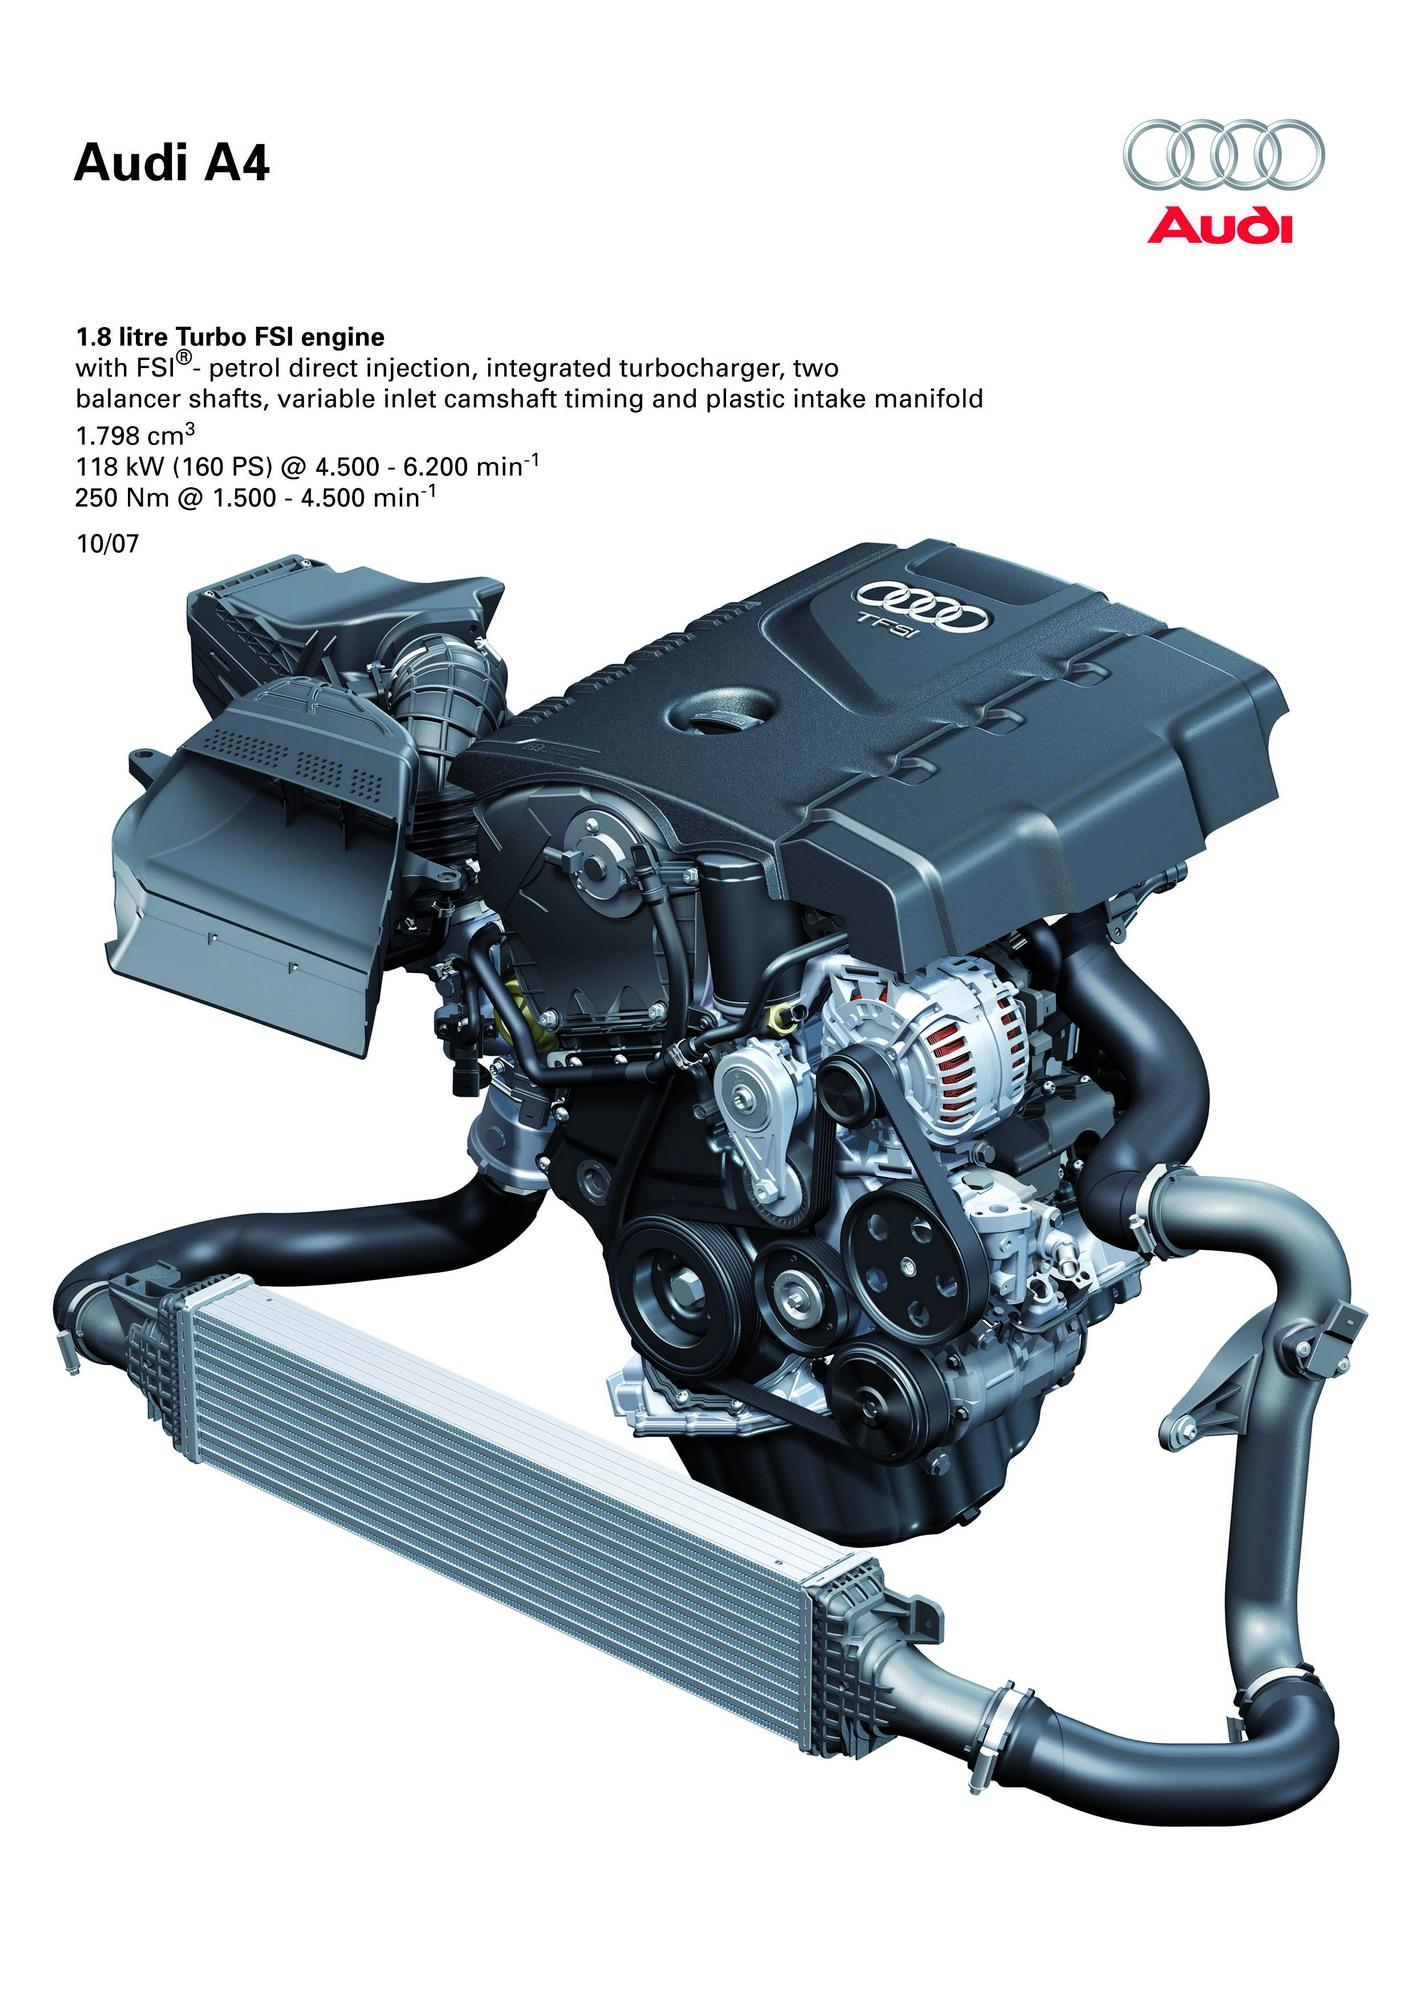 hight resolution of 2008 audi a4 top speed audi a4 avant tuning turbo engine diagram 1600 vw air cooled engines